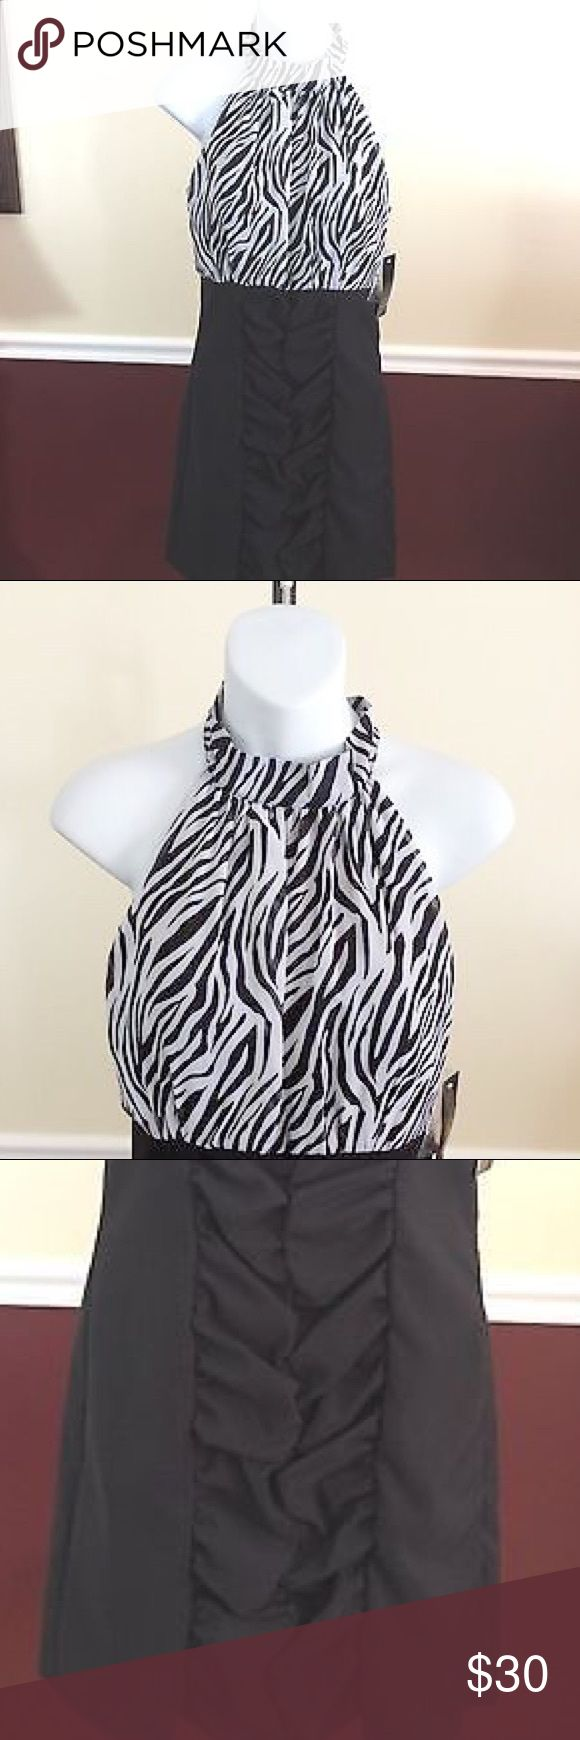 Black and white zebra print dress Brand new. Black and white zebra print dress. Has gathered section in the front. Halter style. Size (3/4) Alyn Paige Dresses